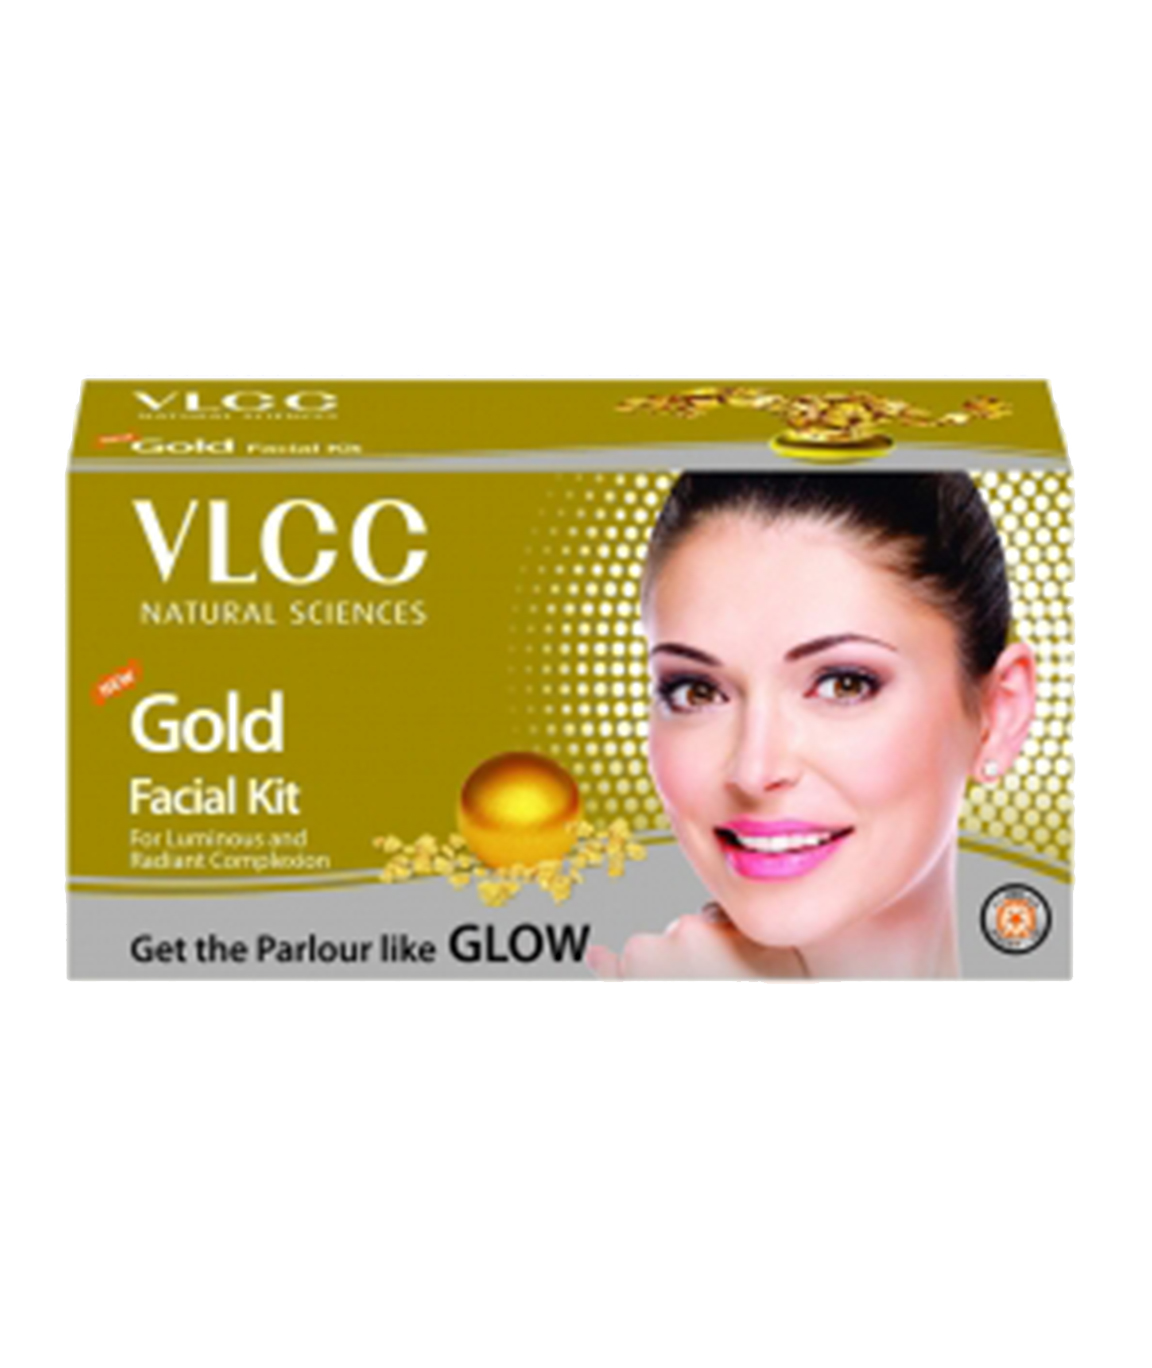 VLCC Gold Facial Kit 60g with Free Party Glow Facial Kit 60g